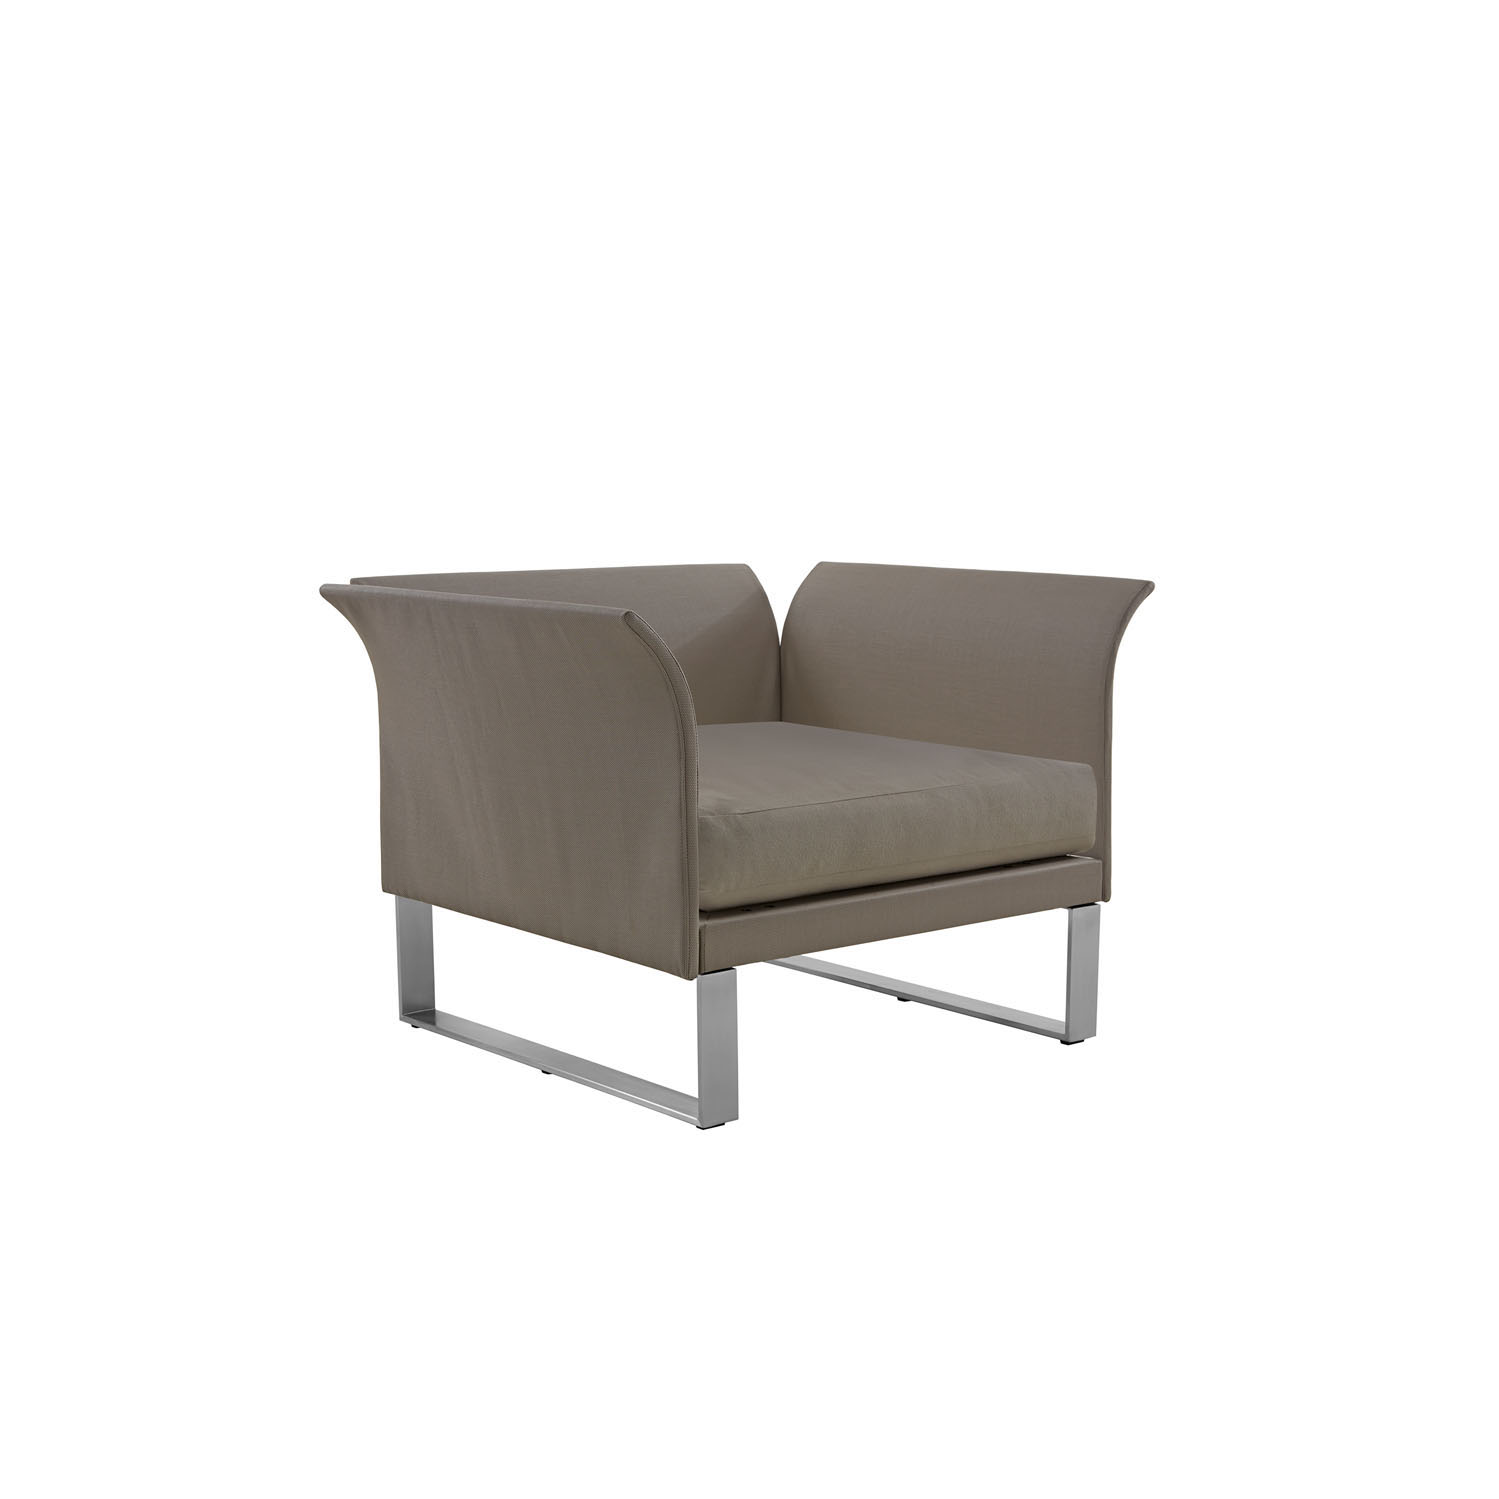 Sifas Komfy Loungesessel Cmg Schweiz Exclusive Outdoor Living